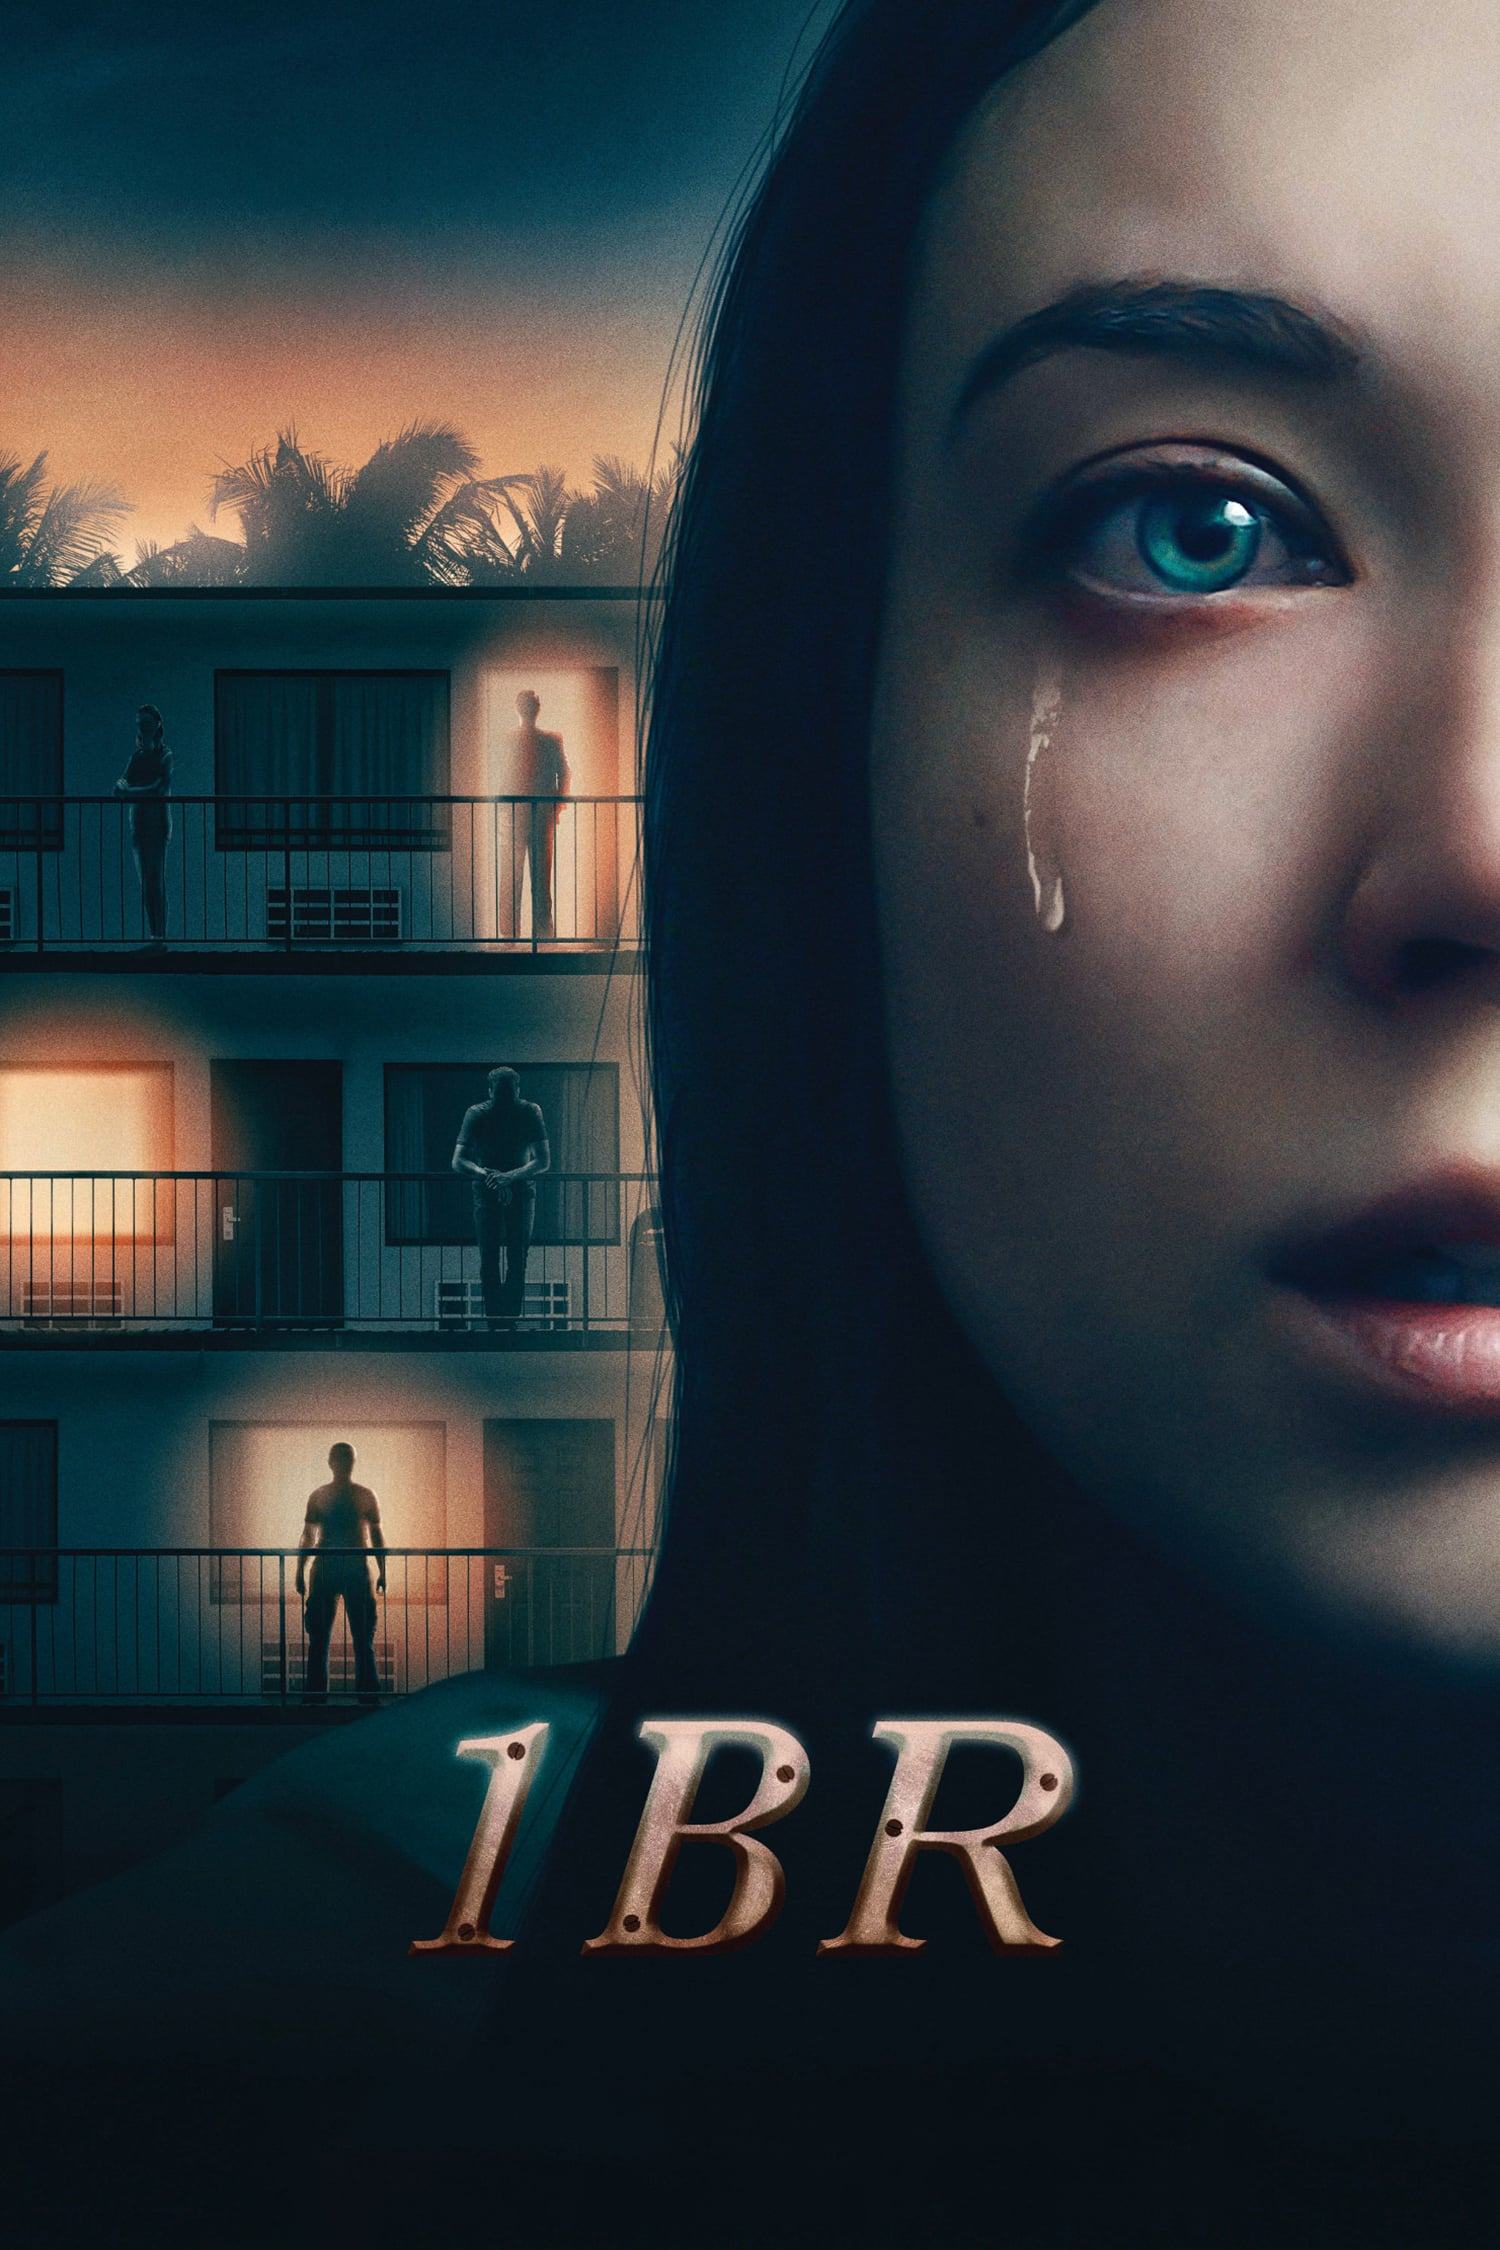 download or watch 1BR full movie online free Openload